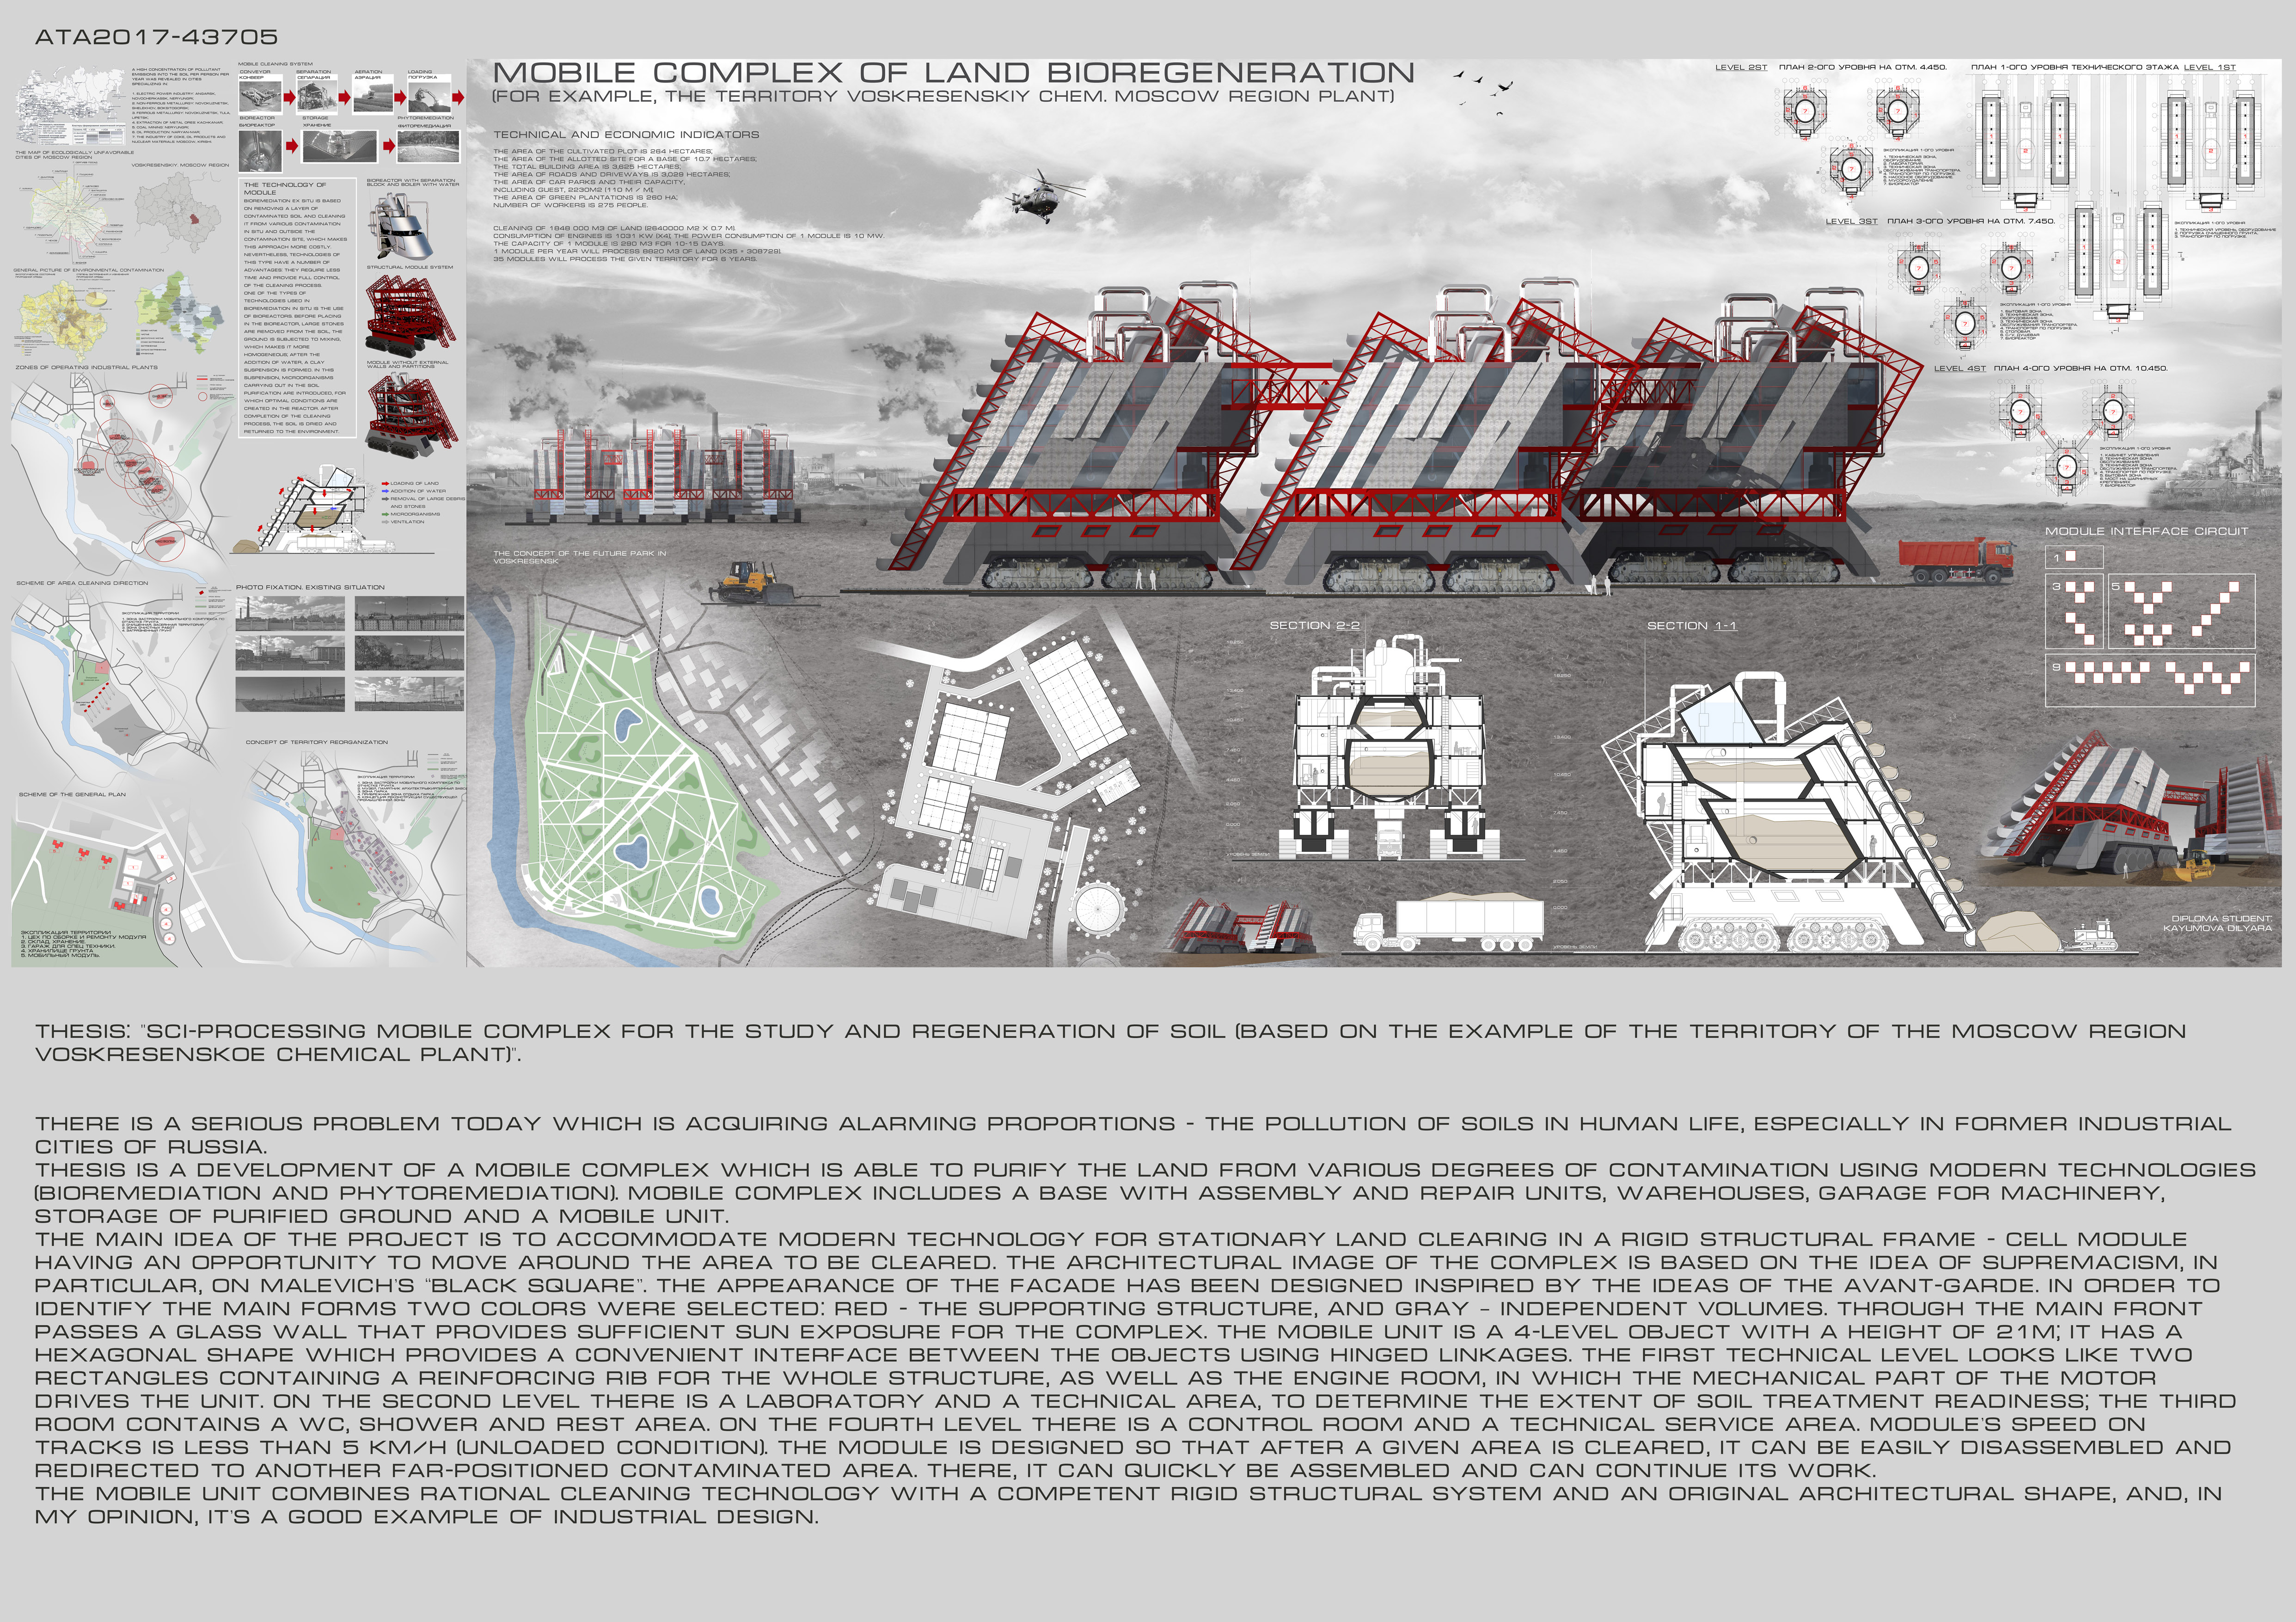 Sci-processing mobile complex for the study and regeneration of soil. Board